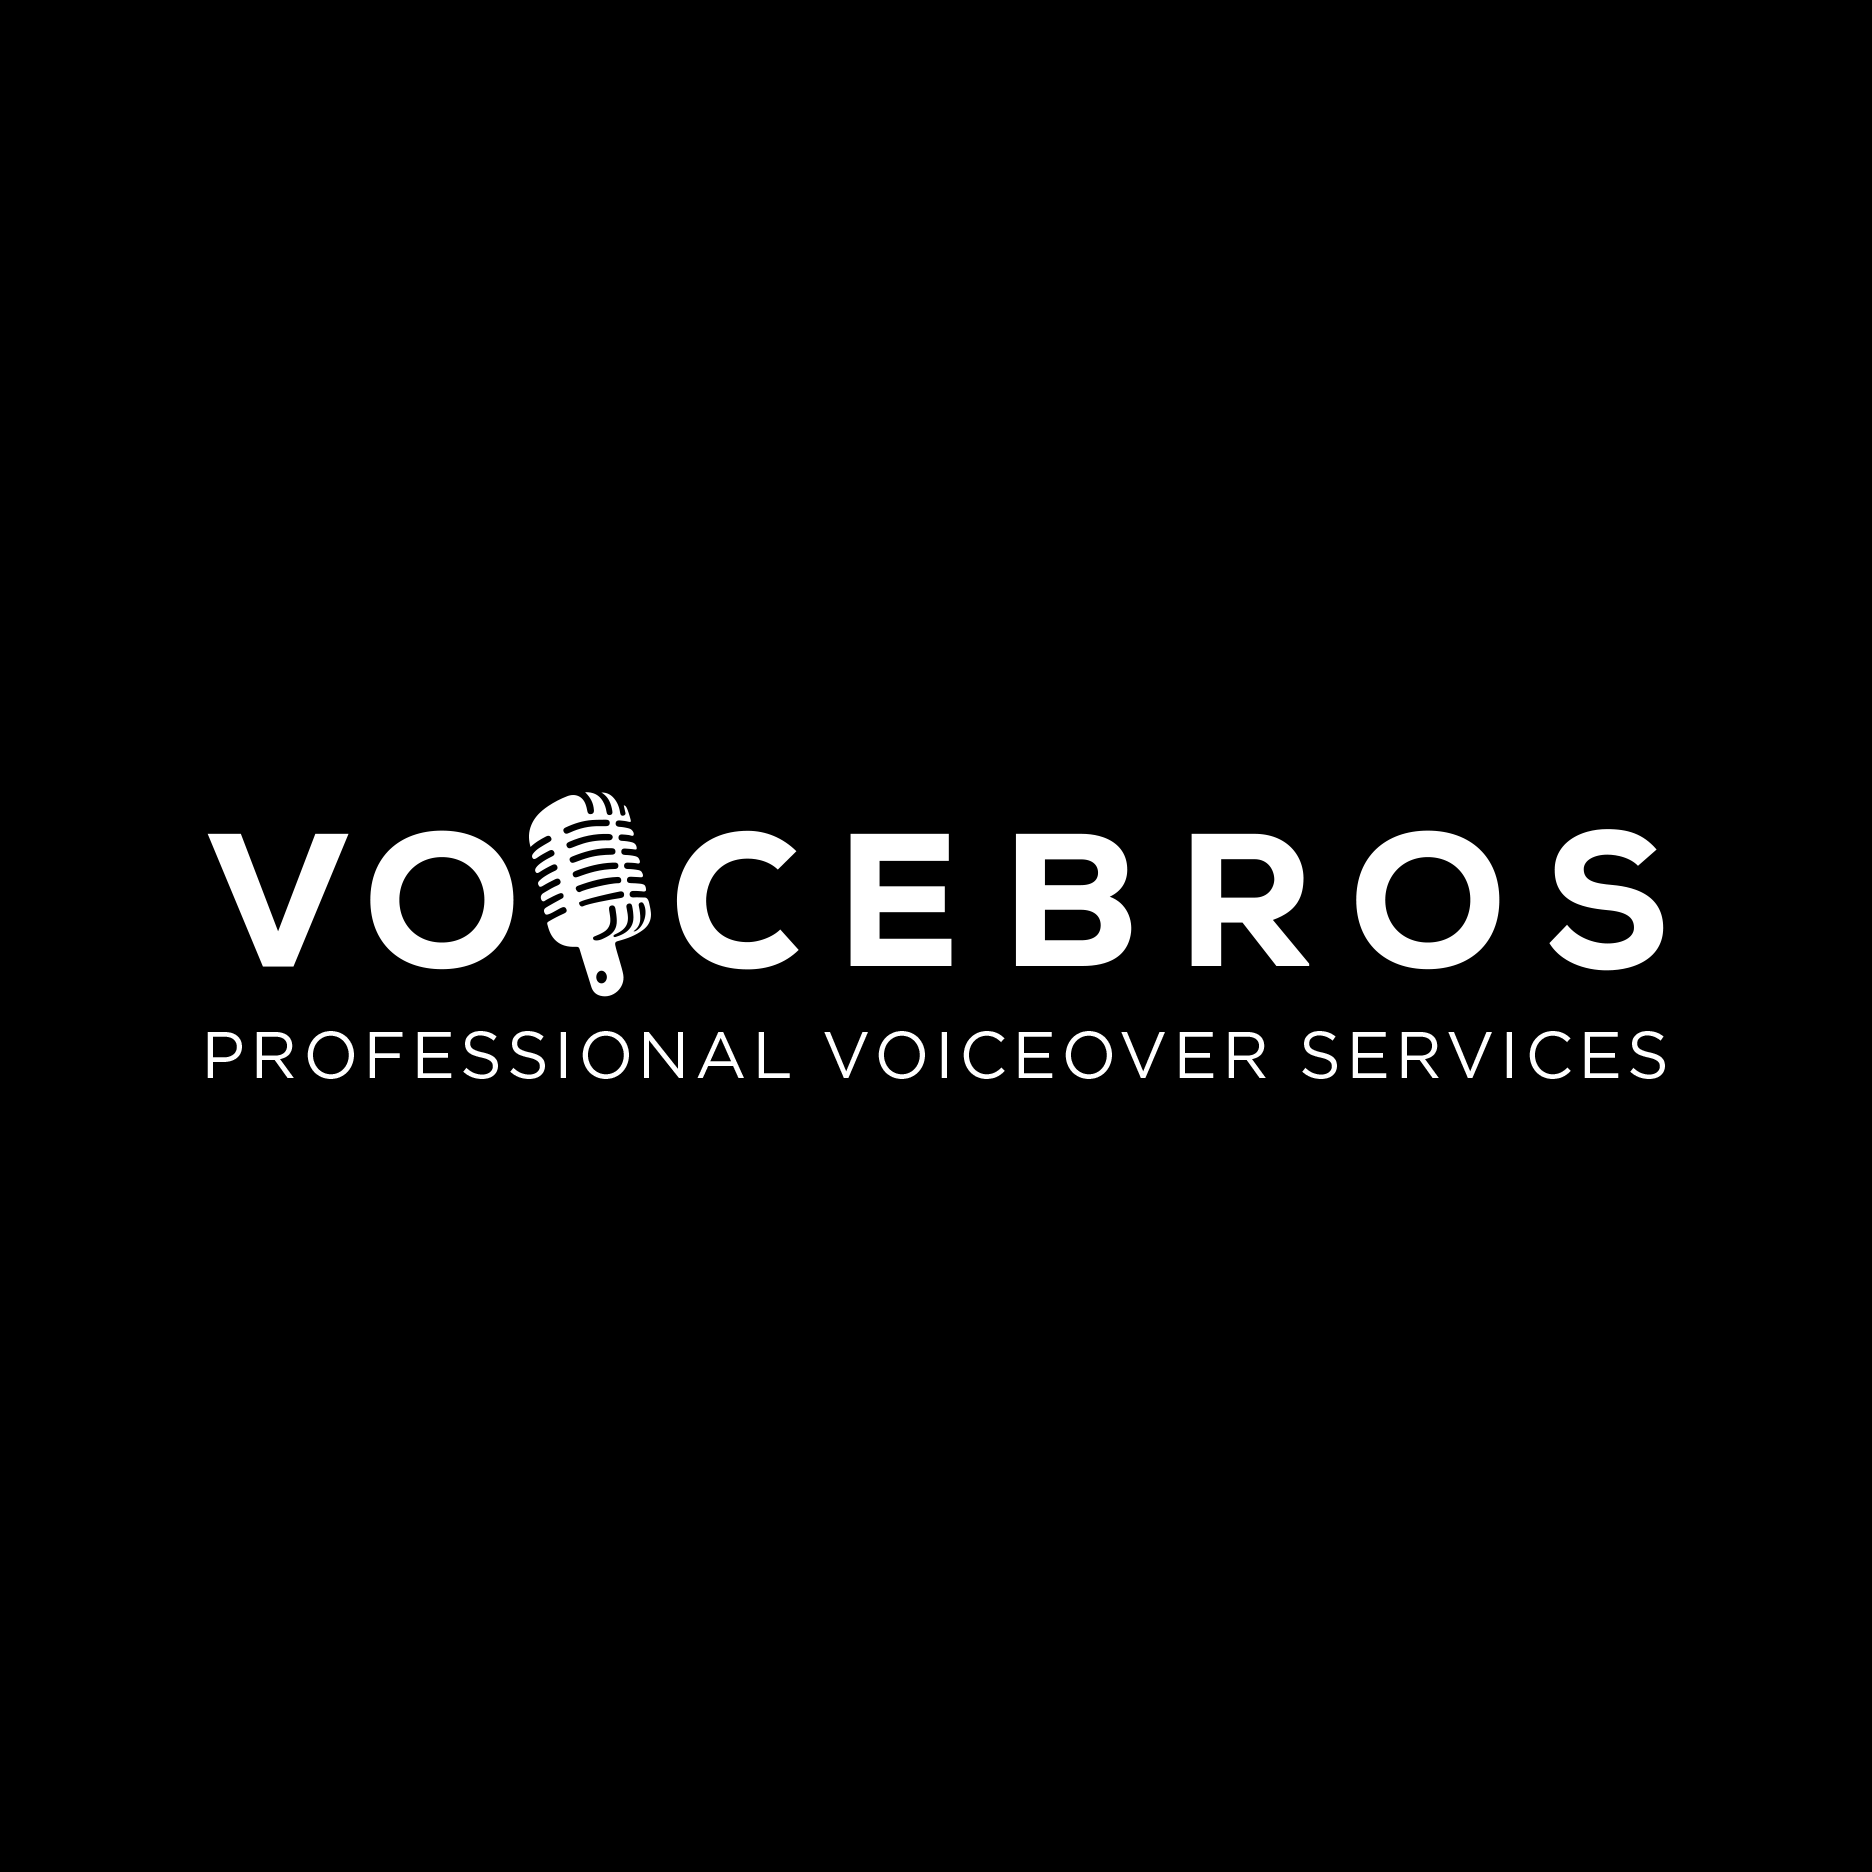 Tanja F is a voice over actor